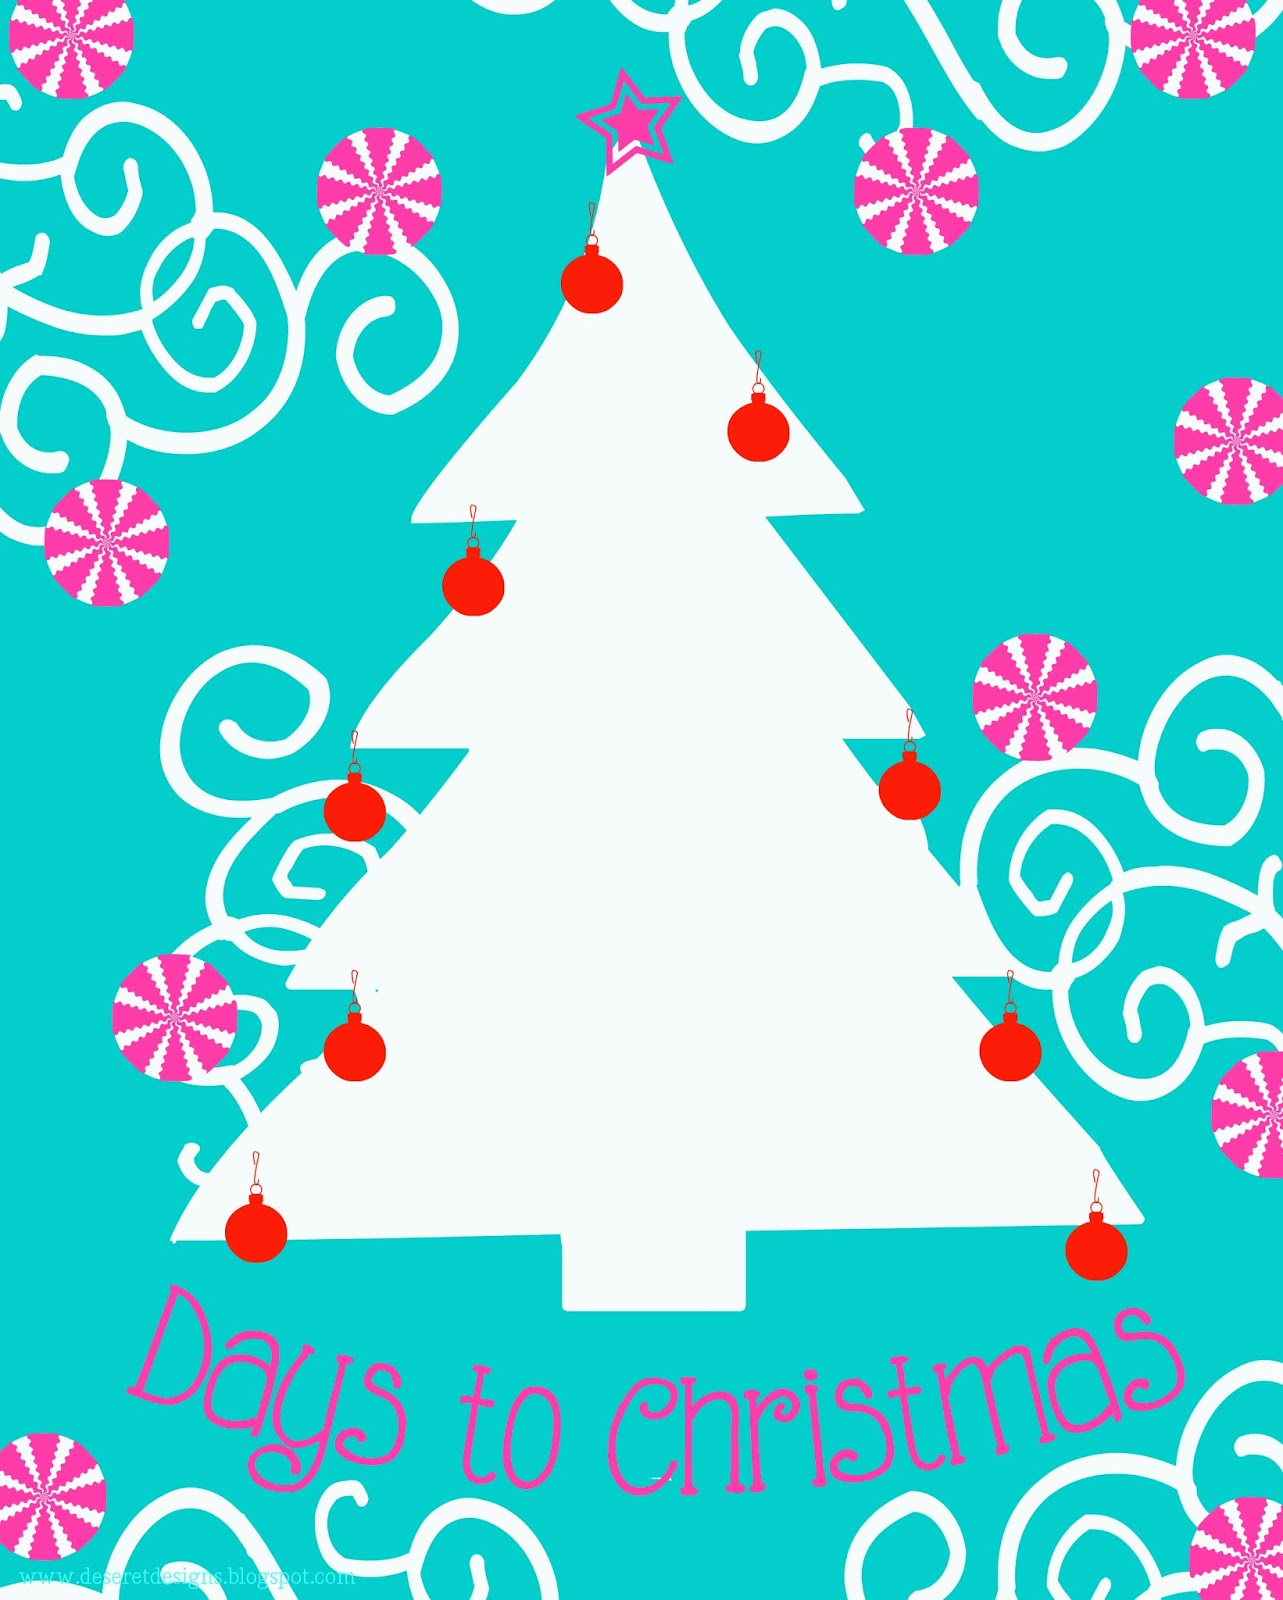 Deseret Designs Days To Christmas Free Countdown Printables